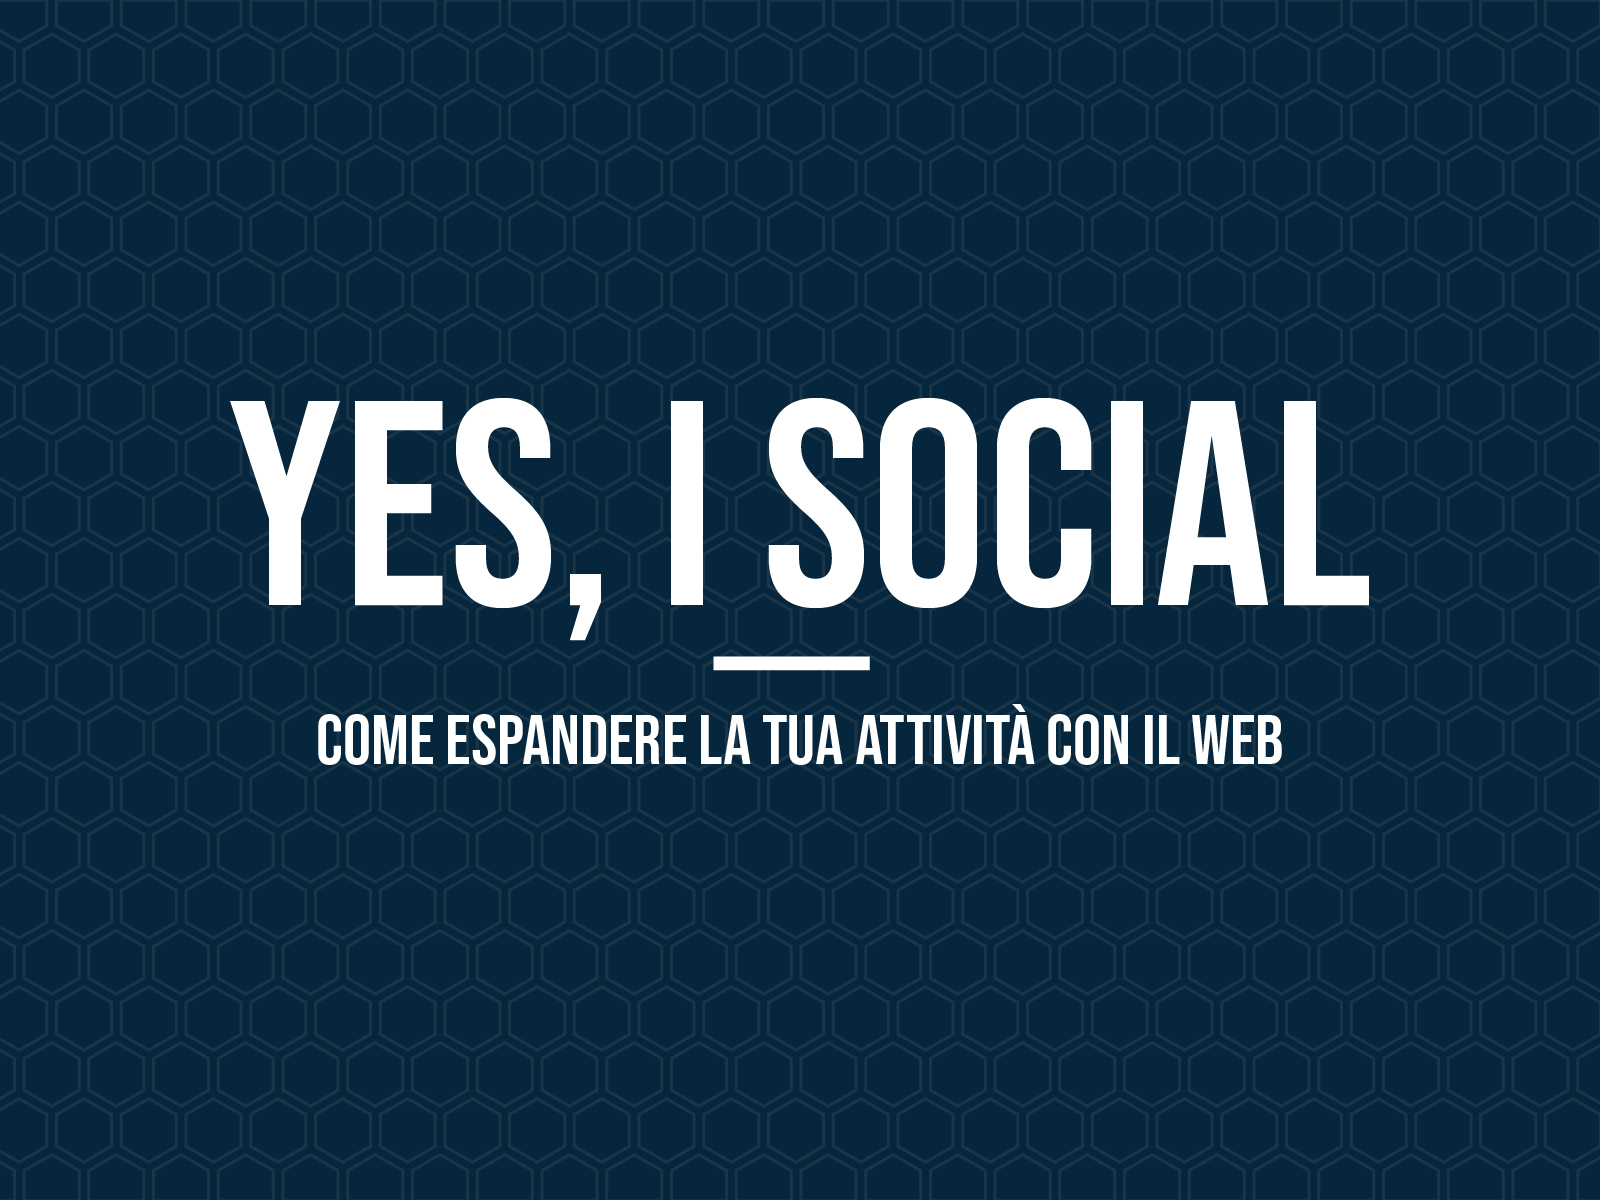 https://ram-consulting.org/wp-content/uploads/2021/01/corso-yes-i-social.jpg